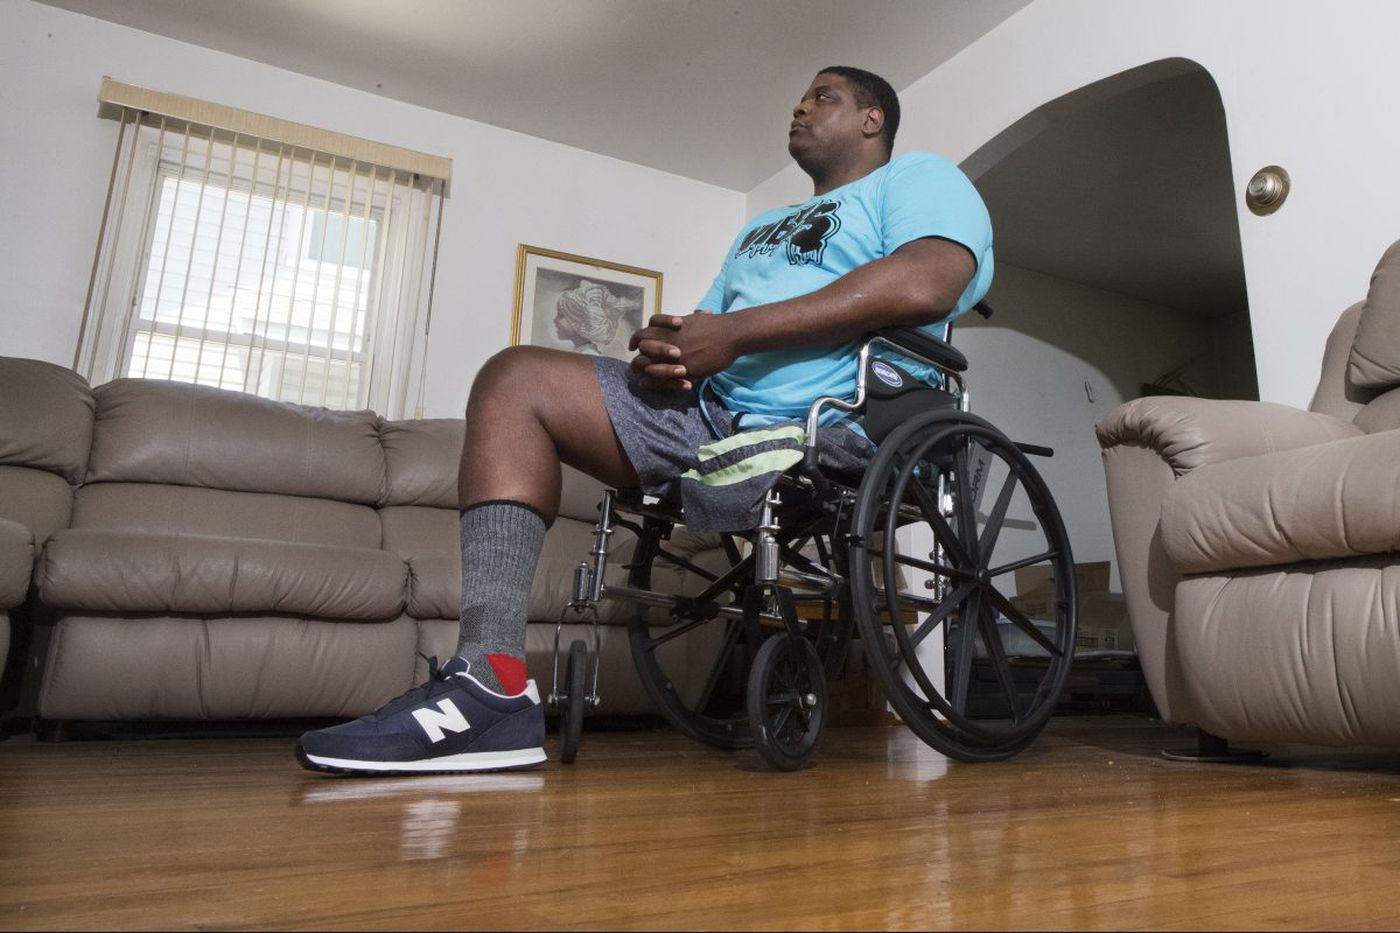 Former Temple big man Ron Rollerson, having lost a leg, finds a new sport